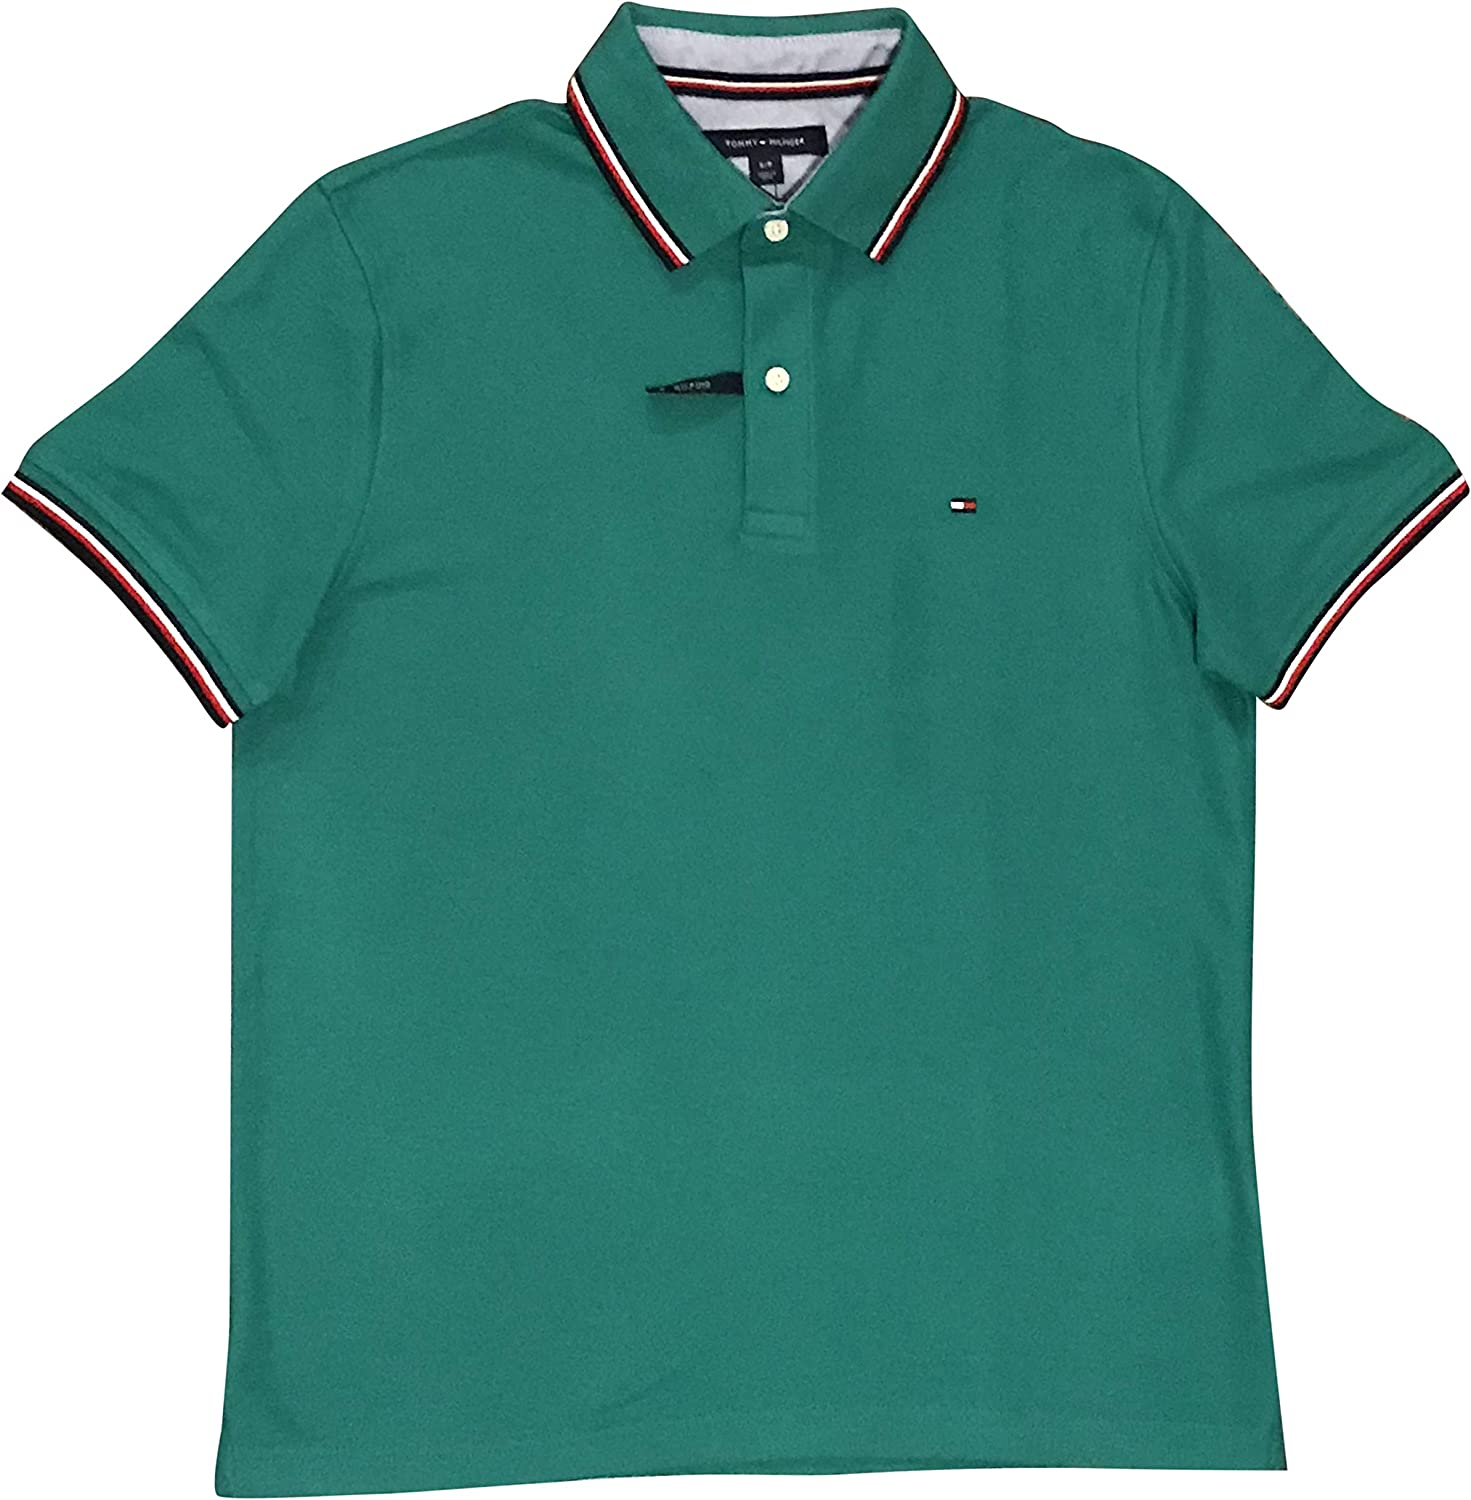 Tommy Hilfiger Men's Las Vegas Mall Collar Polo Striped A surprise price is realized